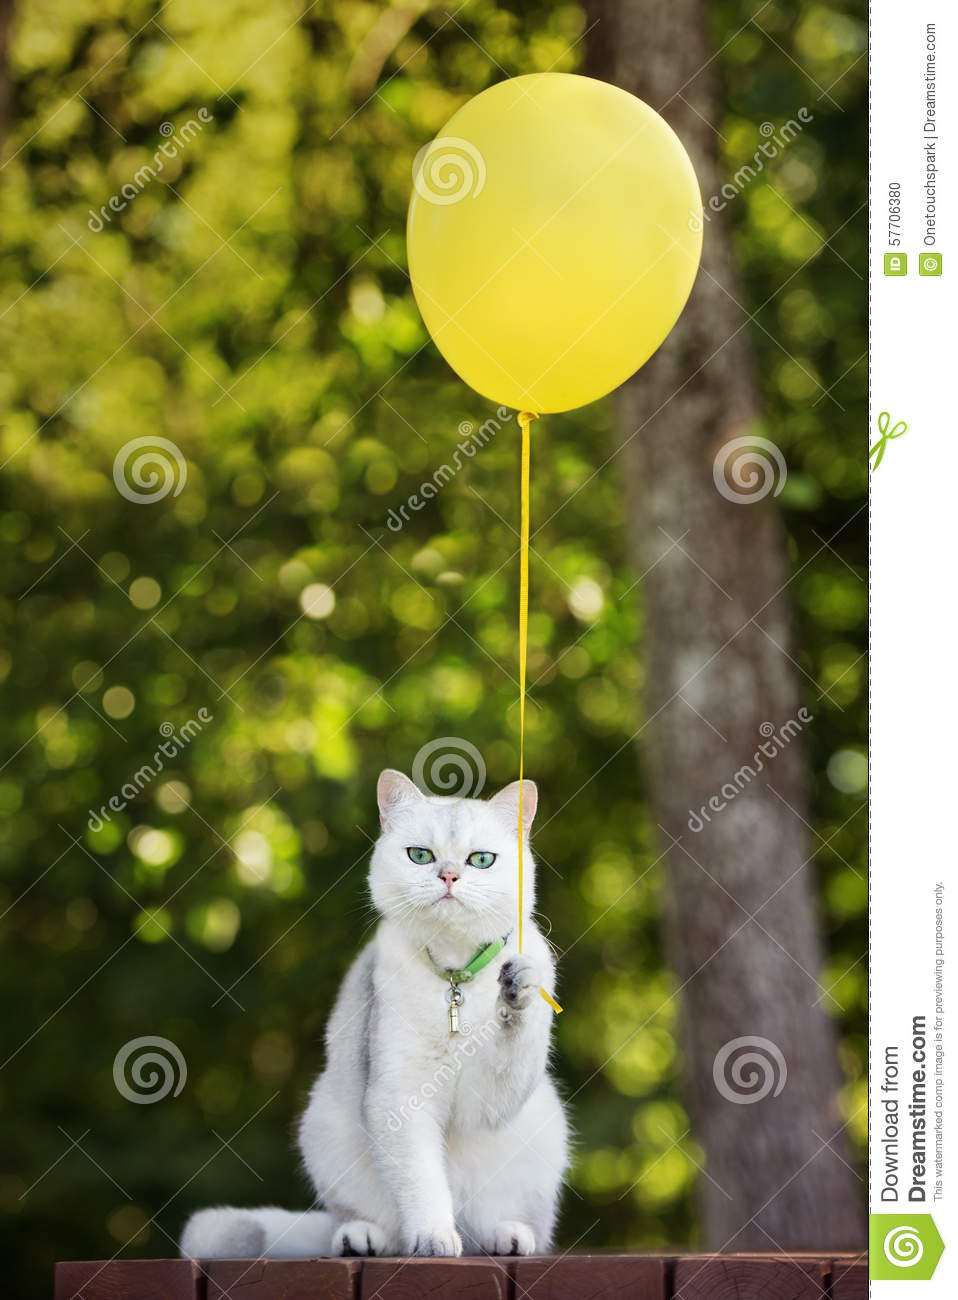 Funny White Cat Holding A Yellow Balloon Stock Photo